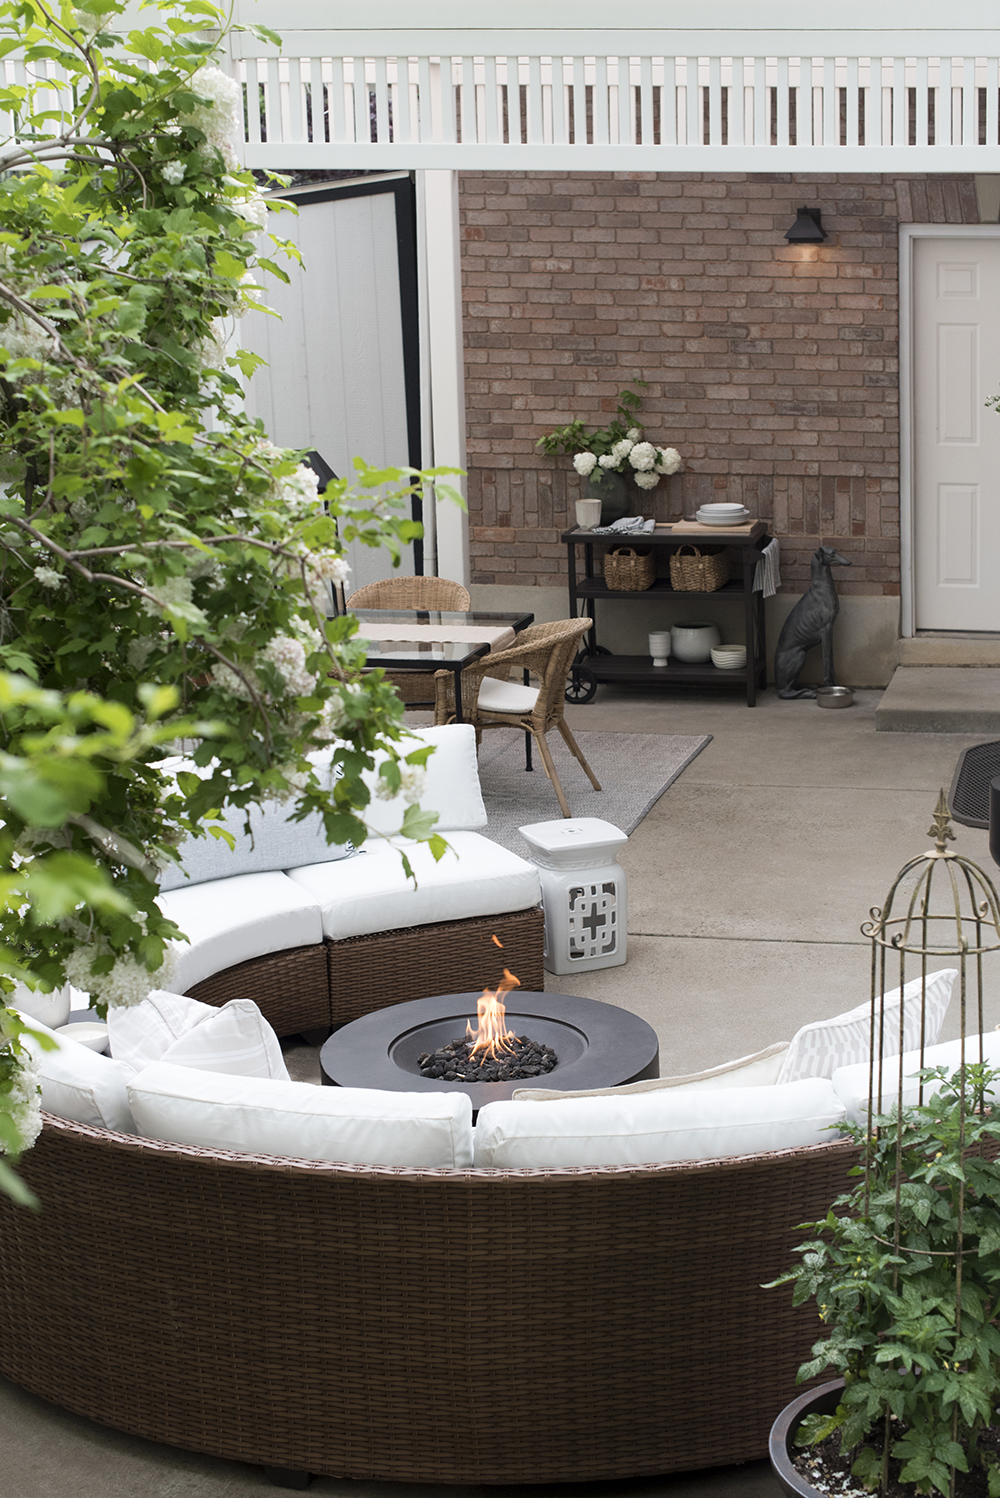 Our Patio & Outdoor Living Space - roomfortuesday.com